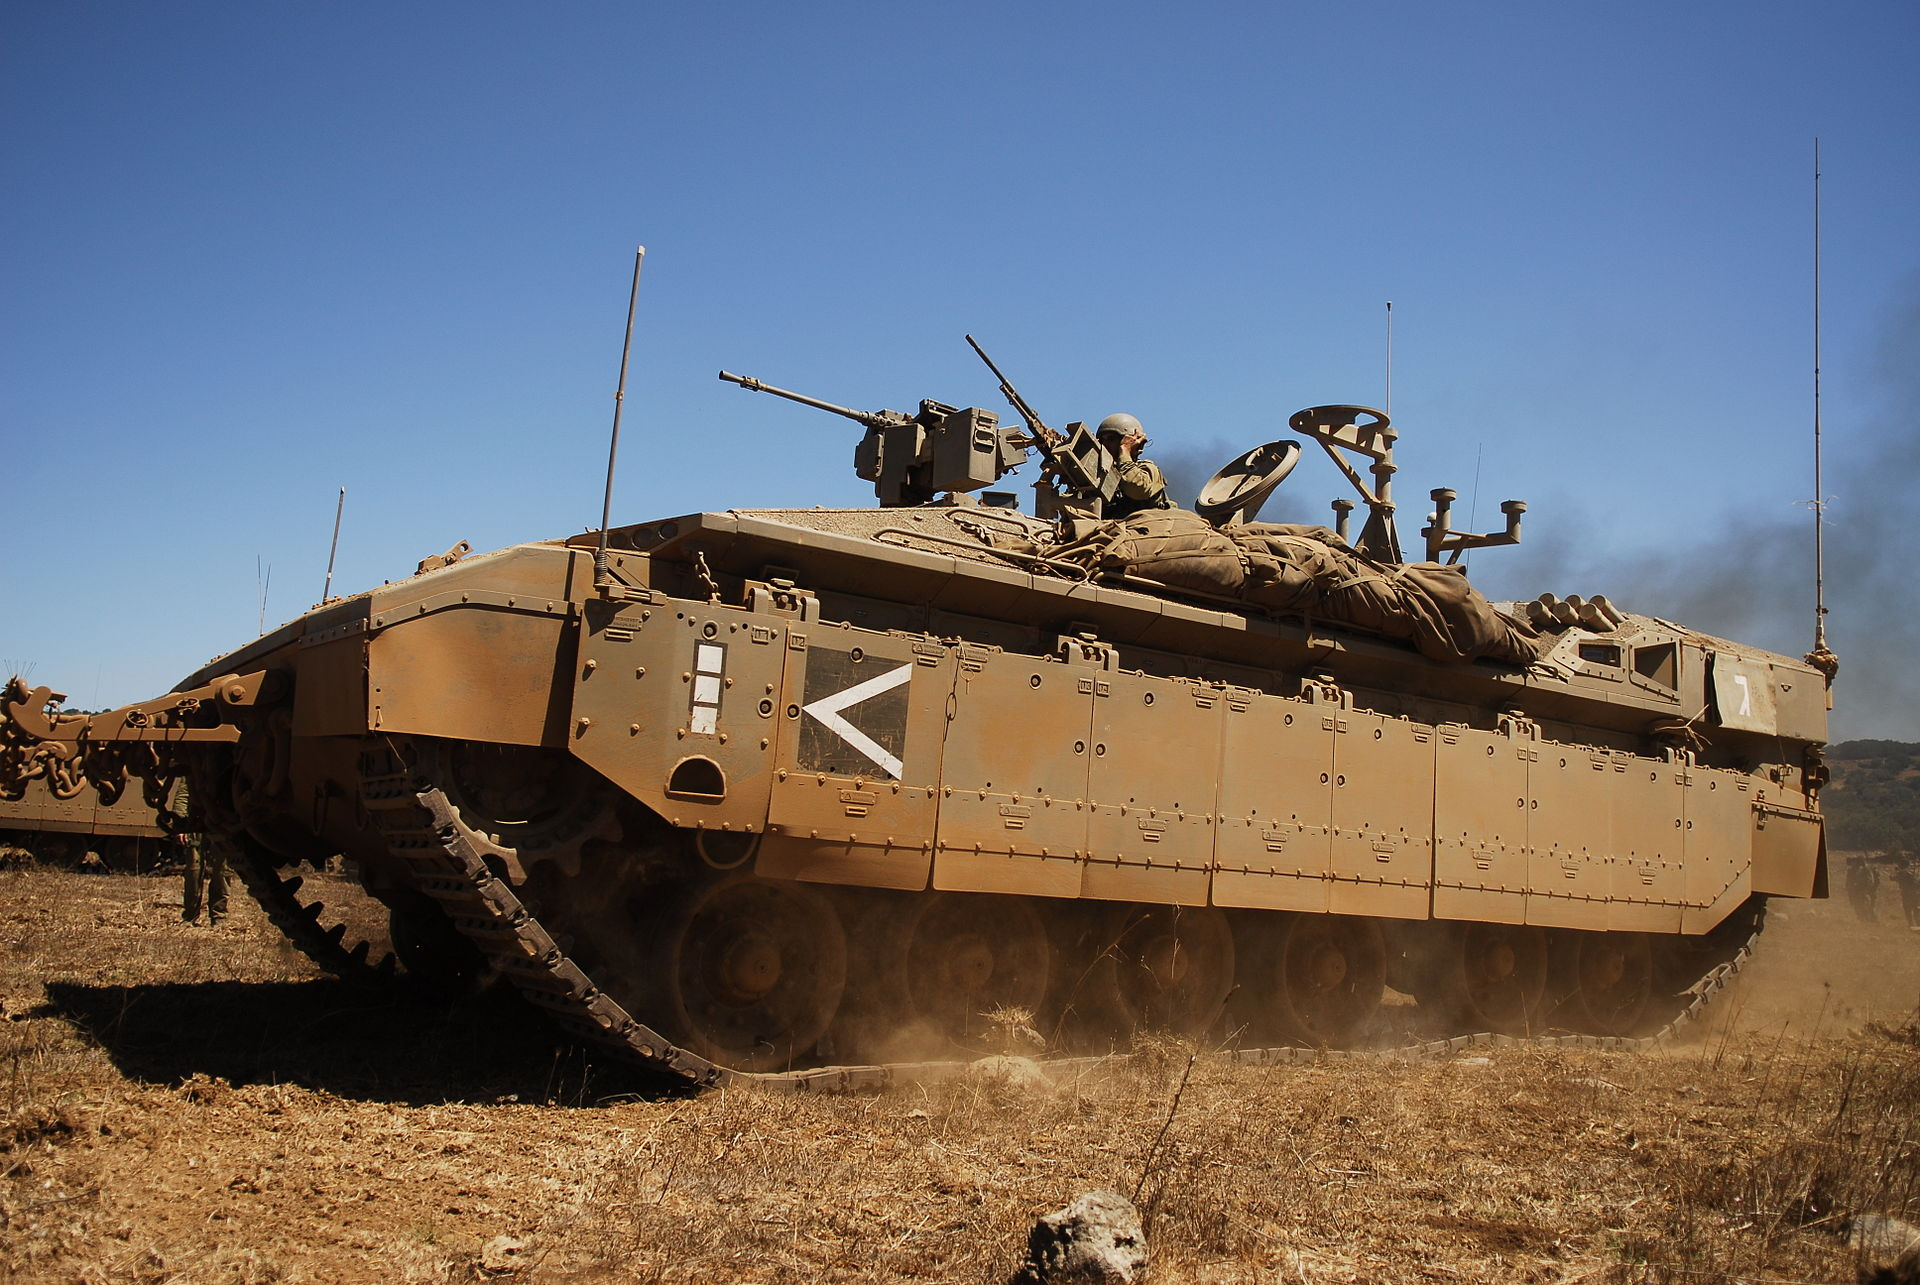 1920px-Flickr_-_Israel_Defense_Forces_-_13th_Battalion_of_the_Golani_Brigade_Holds_Drill_at_Golan_Heights_%289%29.jpg